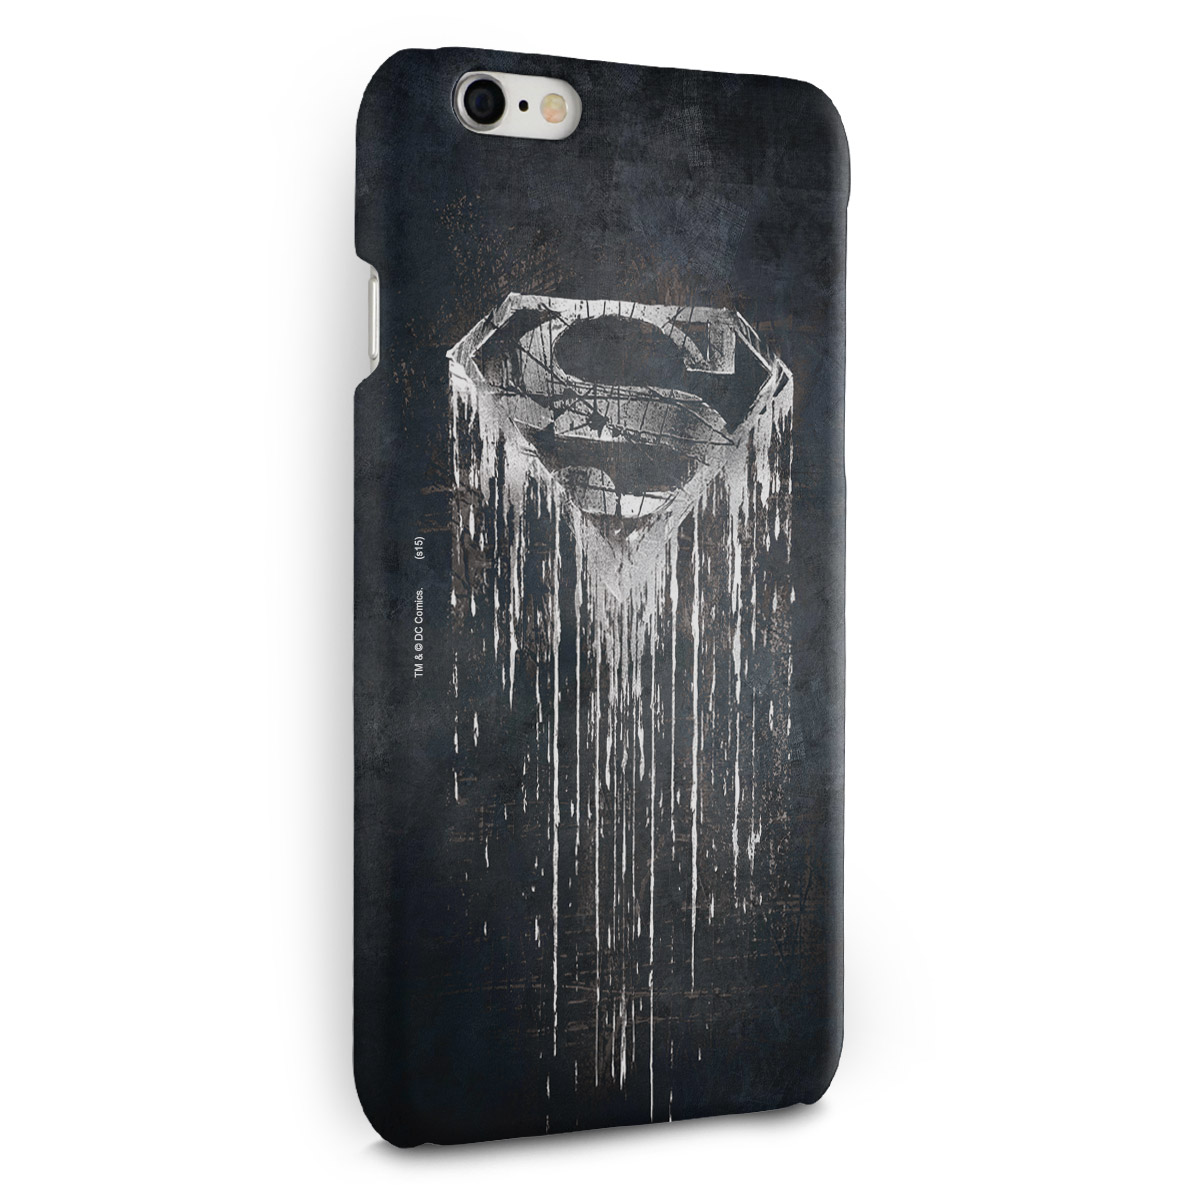 Capa para iPhone 6/6S Plus Superman Steel Melting